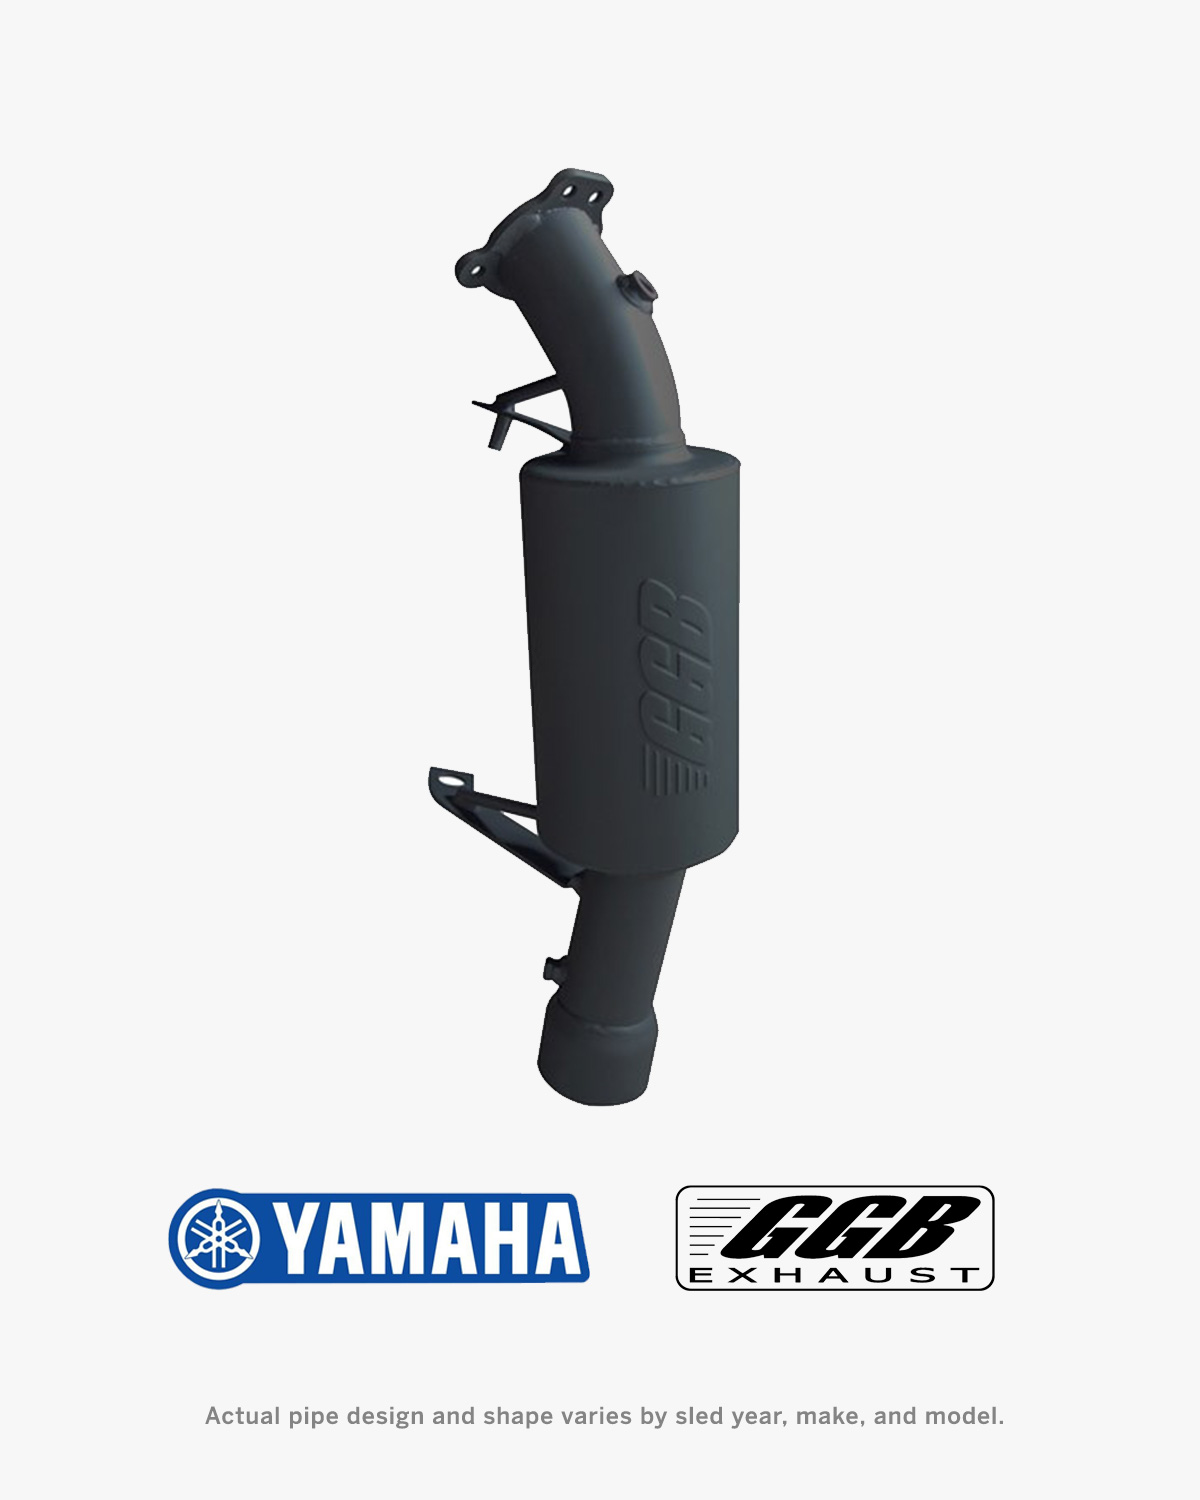 Picture of GGB Trail Exhaust for Yamaha Snowmobiles